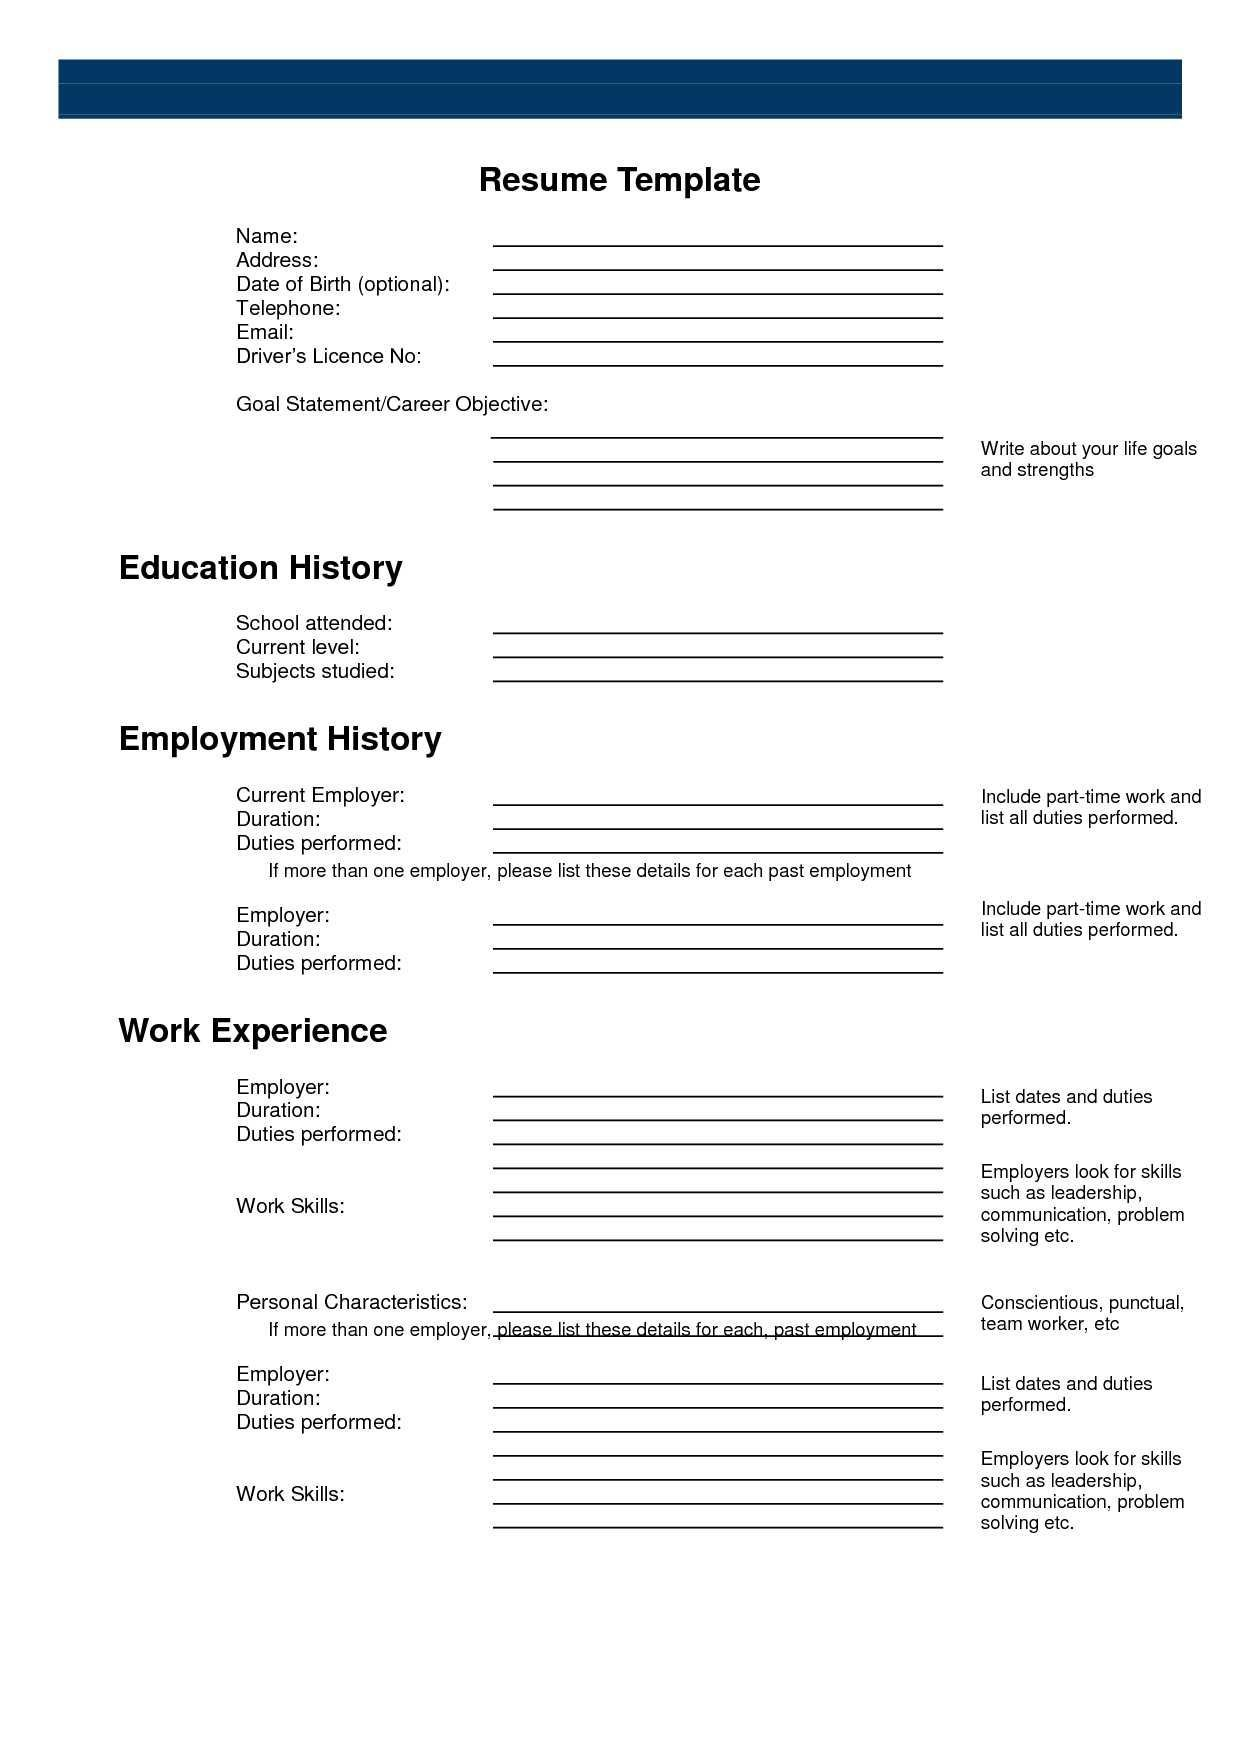 pin by anishfeds on resumes sample resume resume sample resume